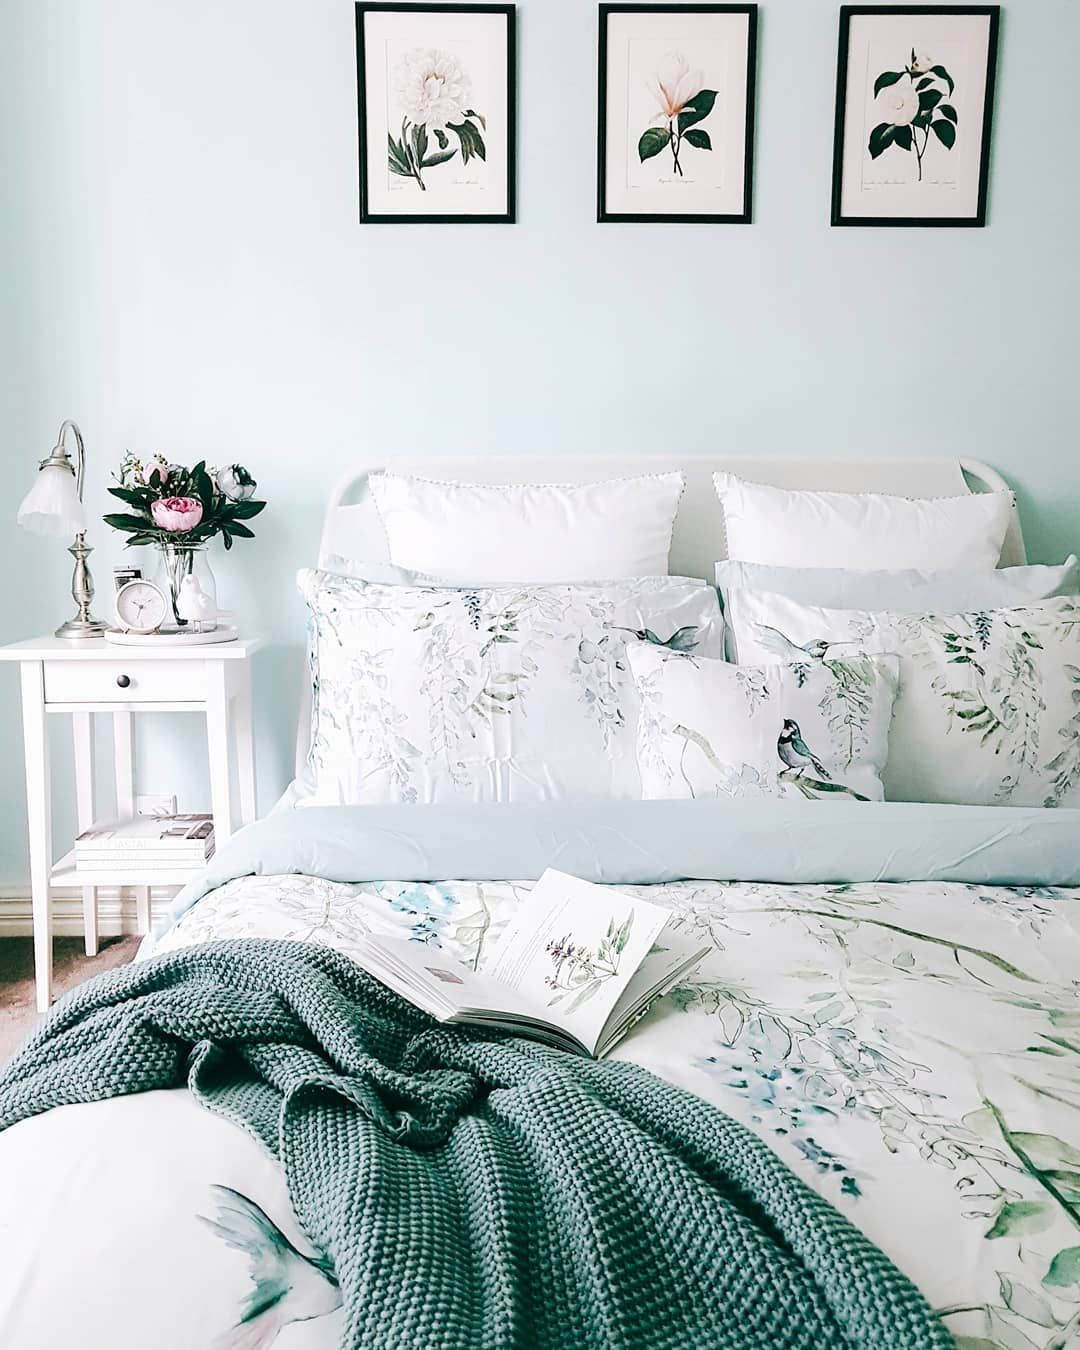 Bedroom pastel blue provincial (With images) Blue room